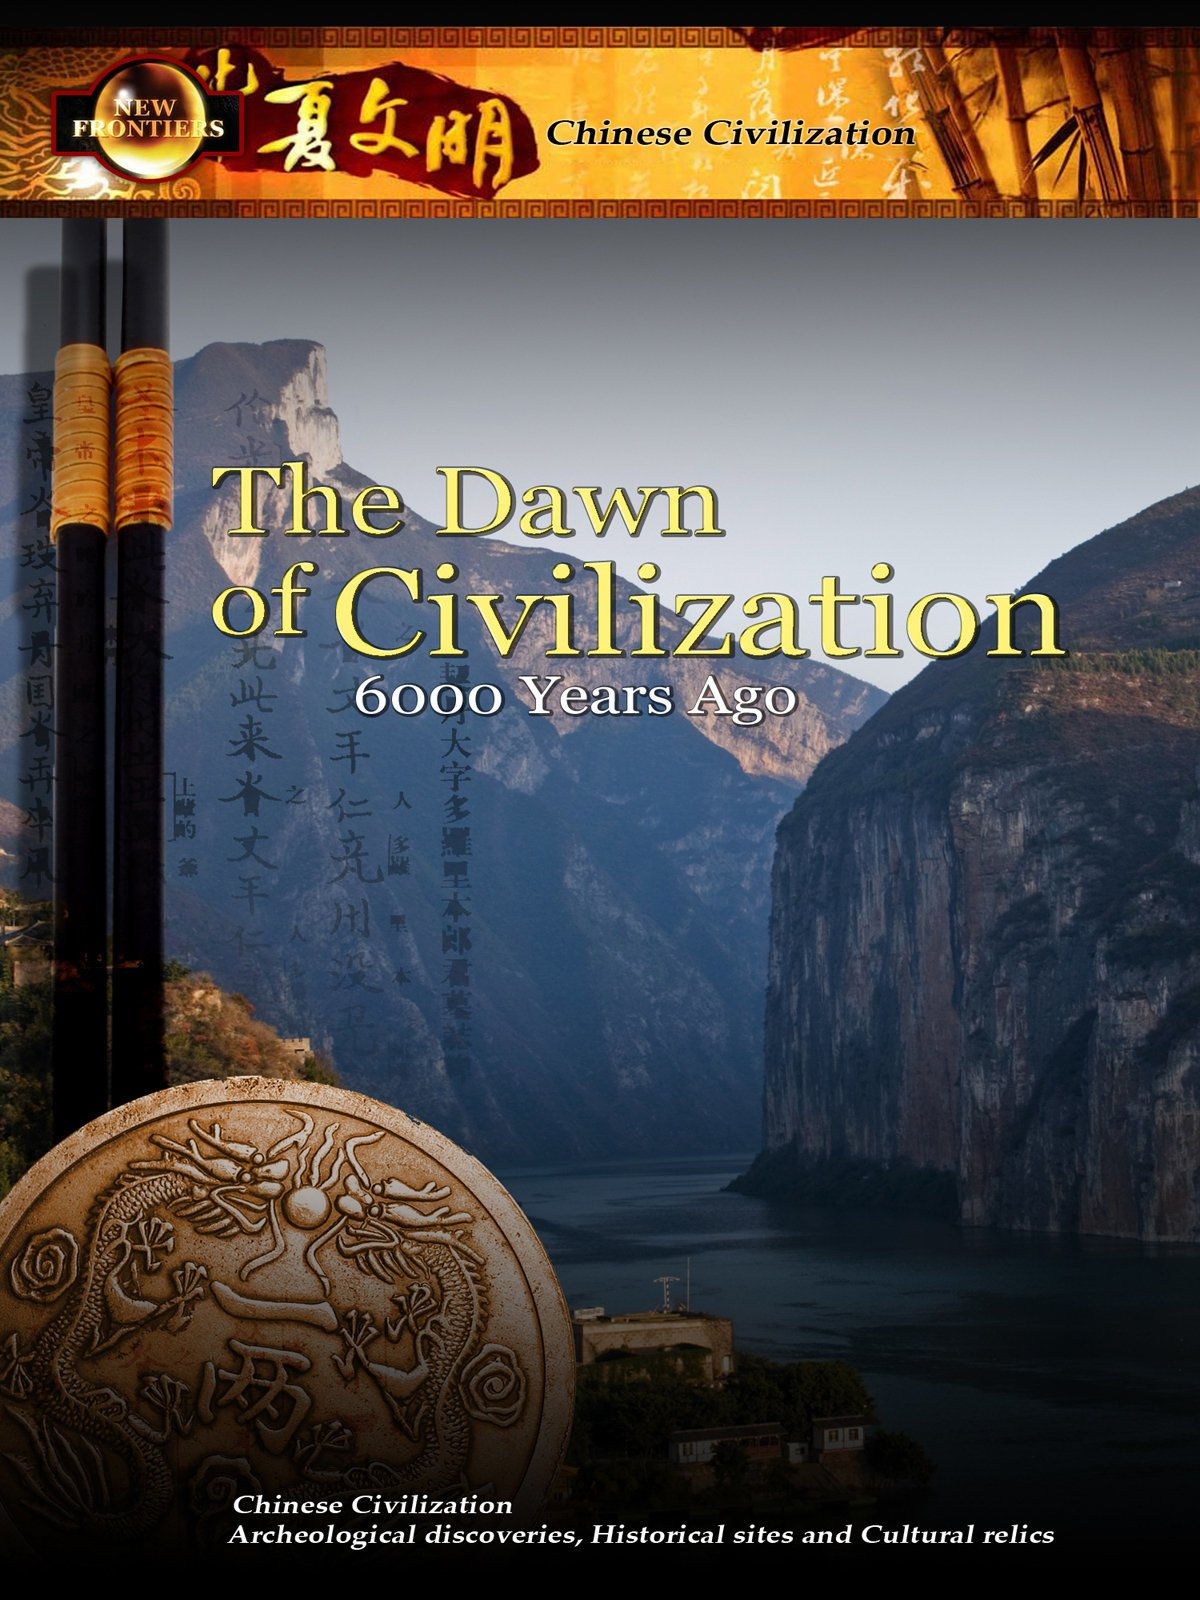 Chinese Civilization - The Dawn of Civilization 6,000 Years Ago